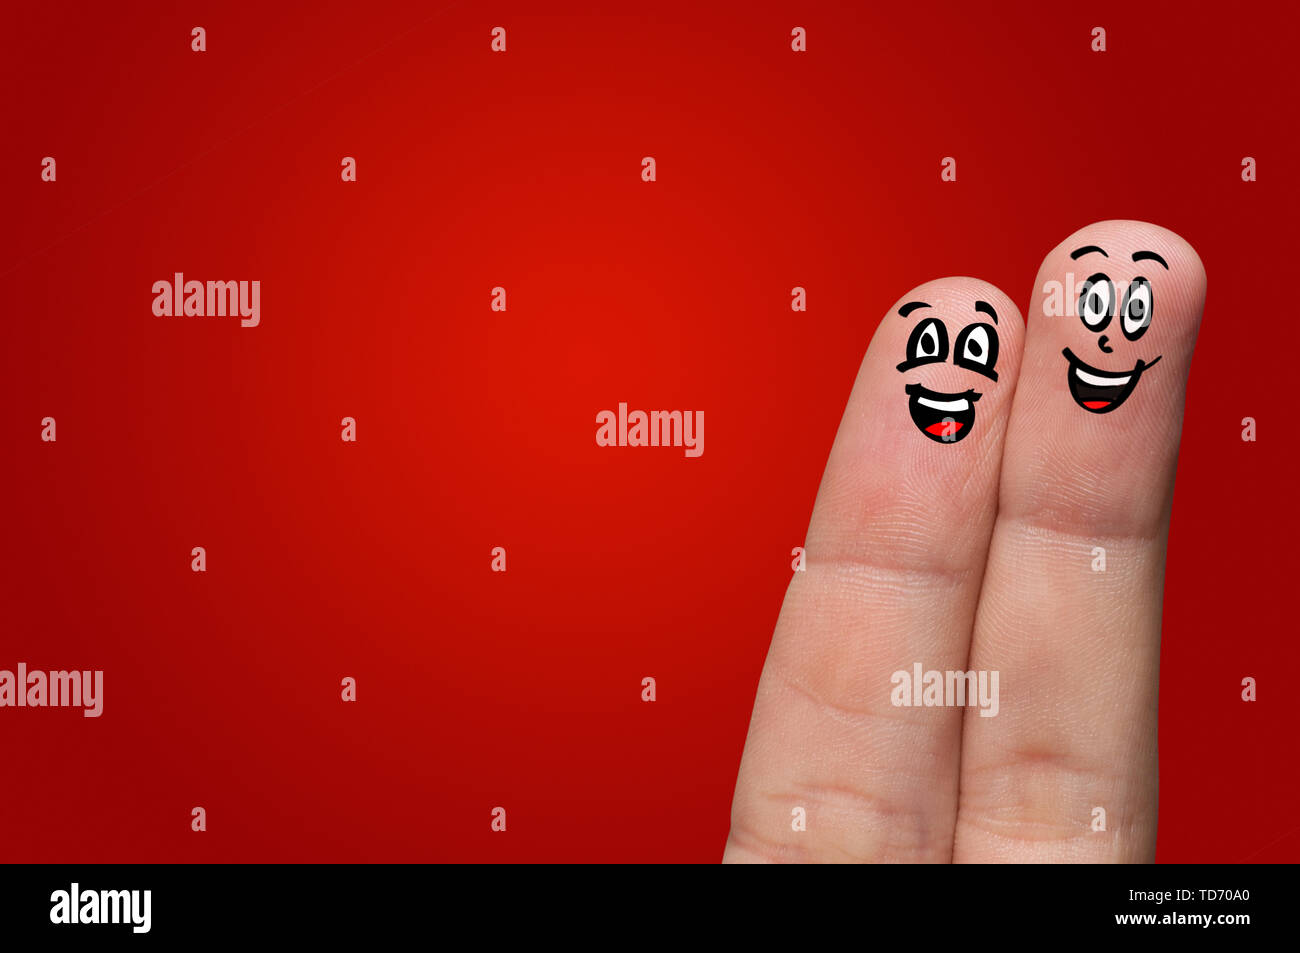 Smart looking fingers smiling and hugging - Stock Image